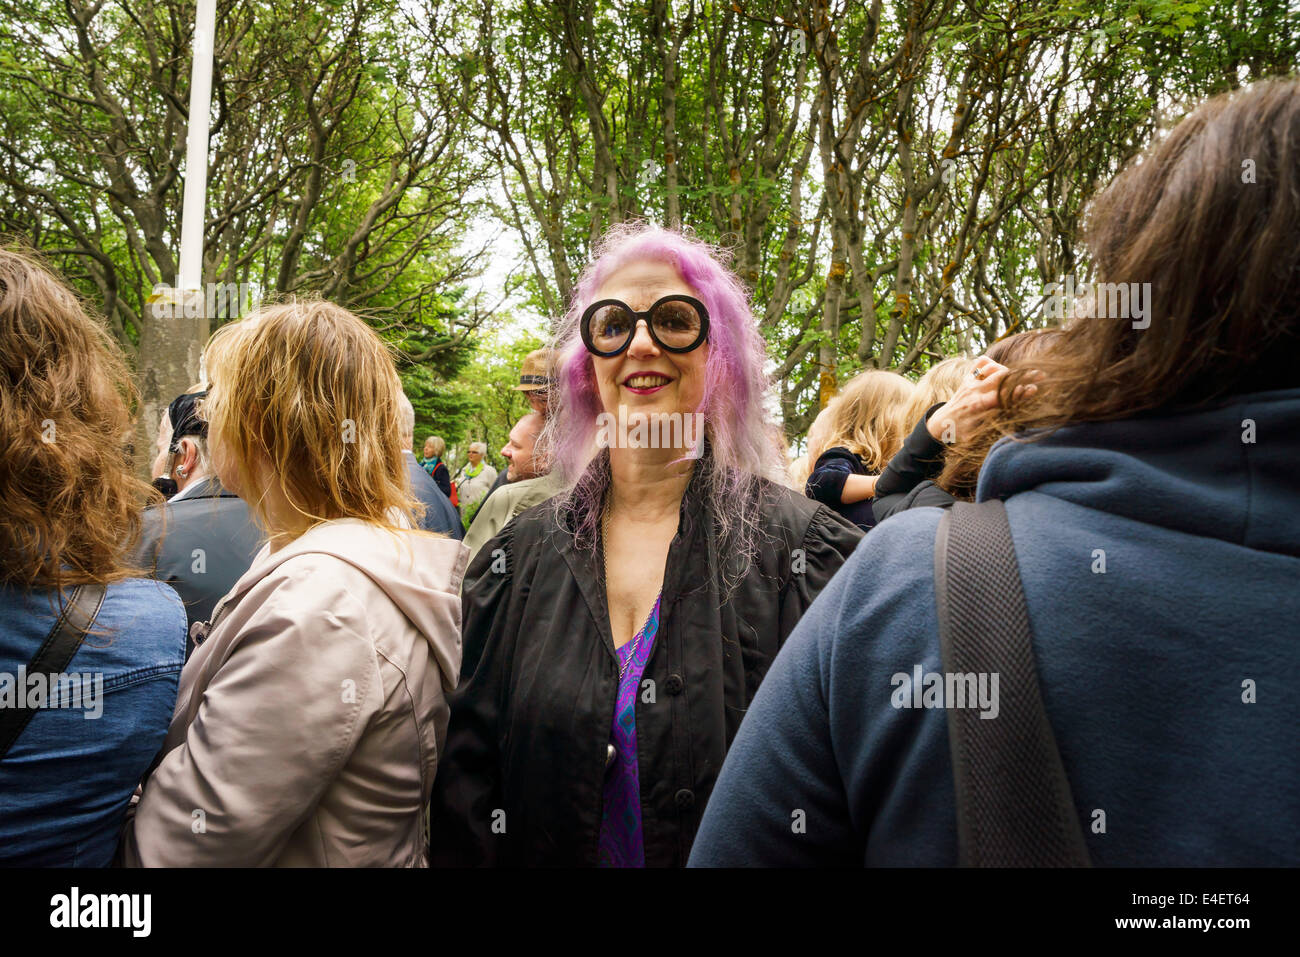 Woman with hair dyed pink and bold round glasses, June 17th-Iceland's Independence Day, Reykjavik, Iceland - Stock Image